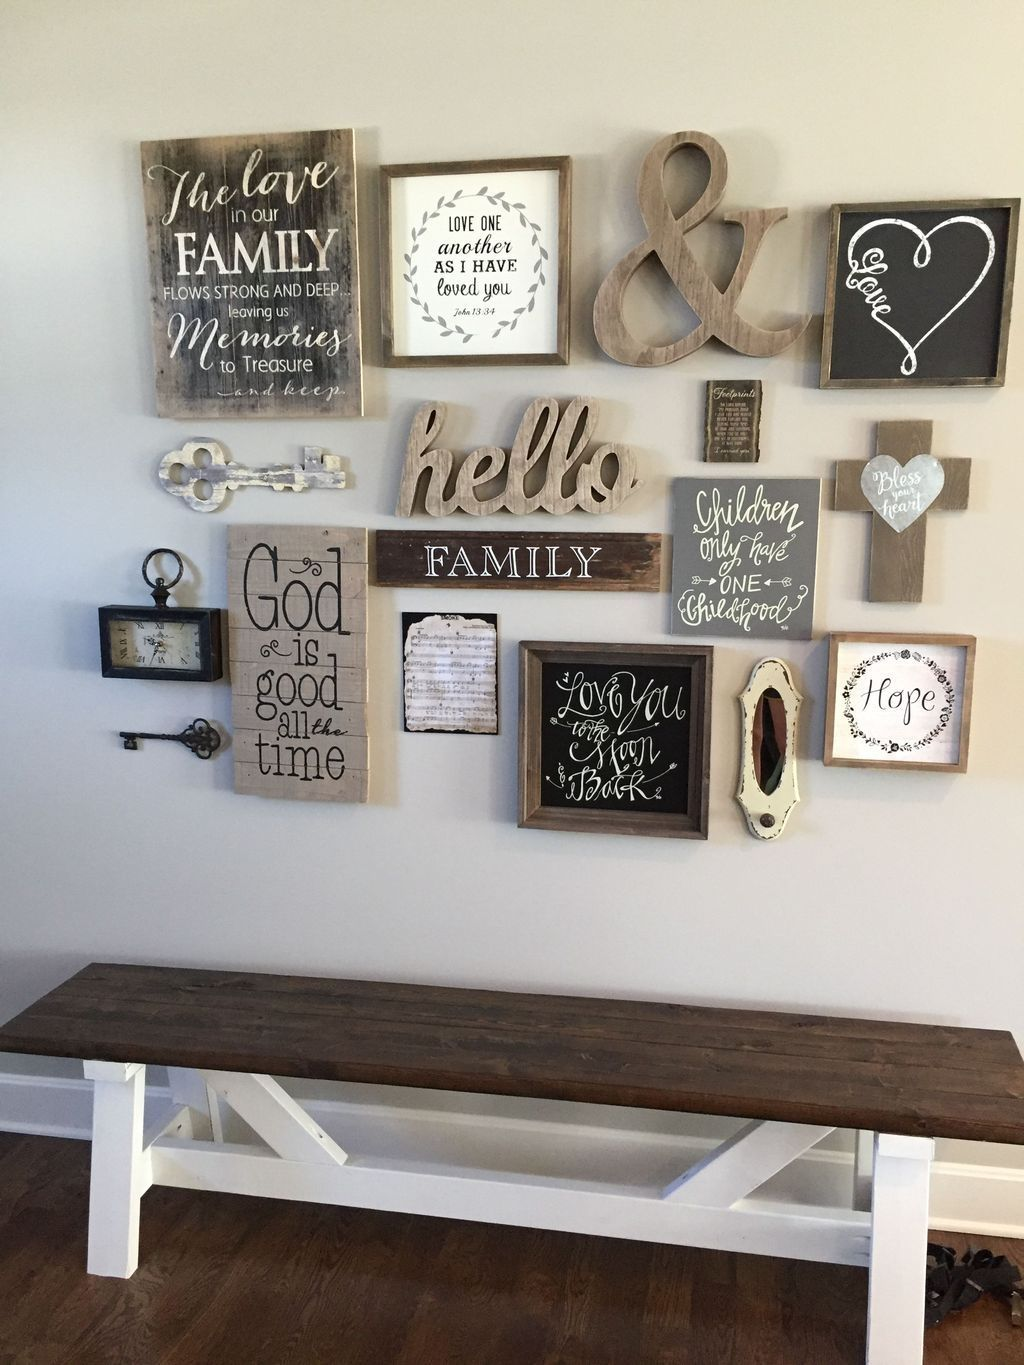 Living room shelf decor gallery wall farmhouse also message farm house style in kitchen rh pinterest